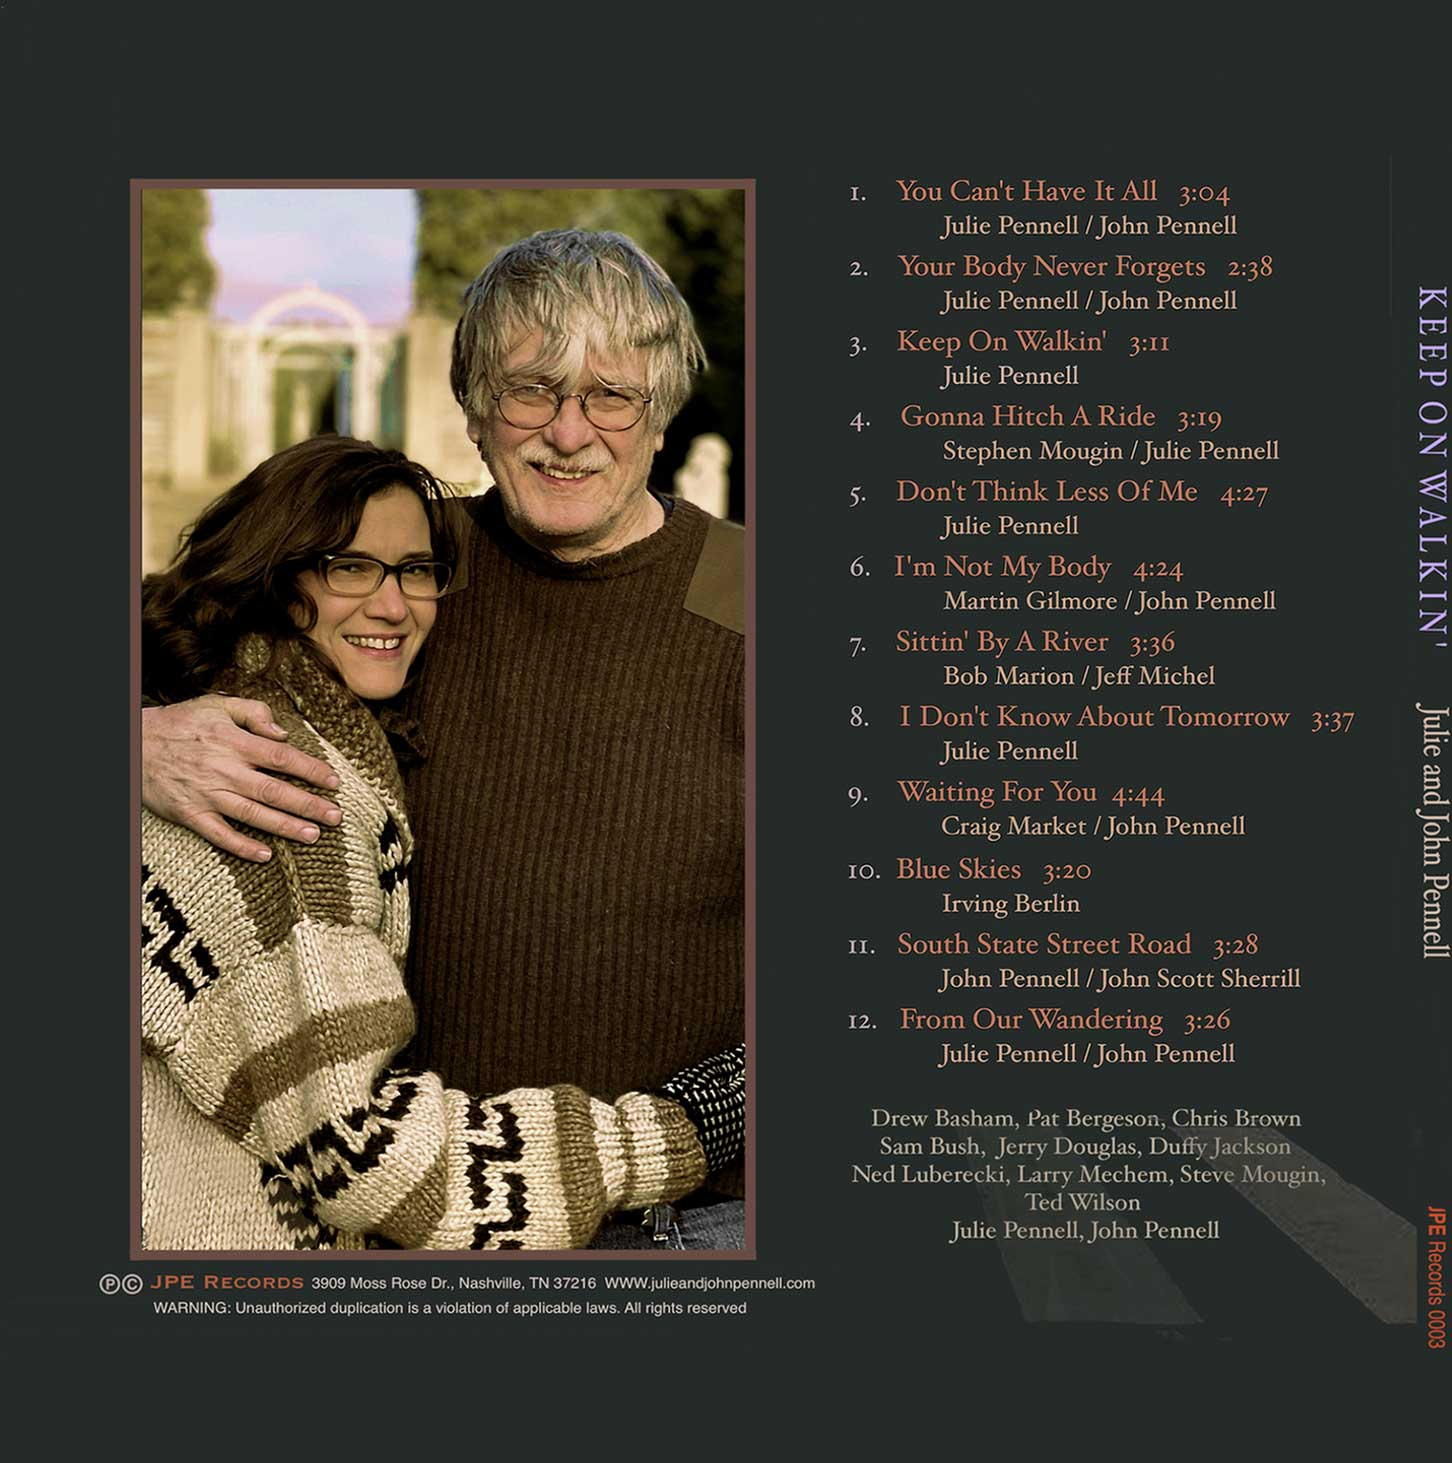 Song list for Keep on Walkin by Julie and John Pennell